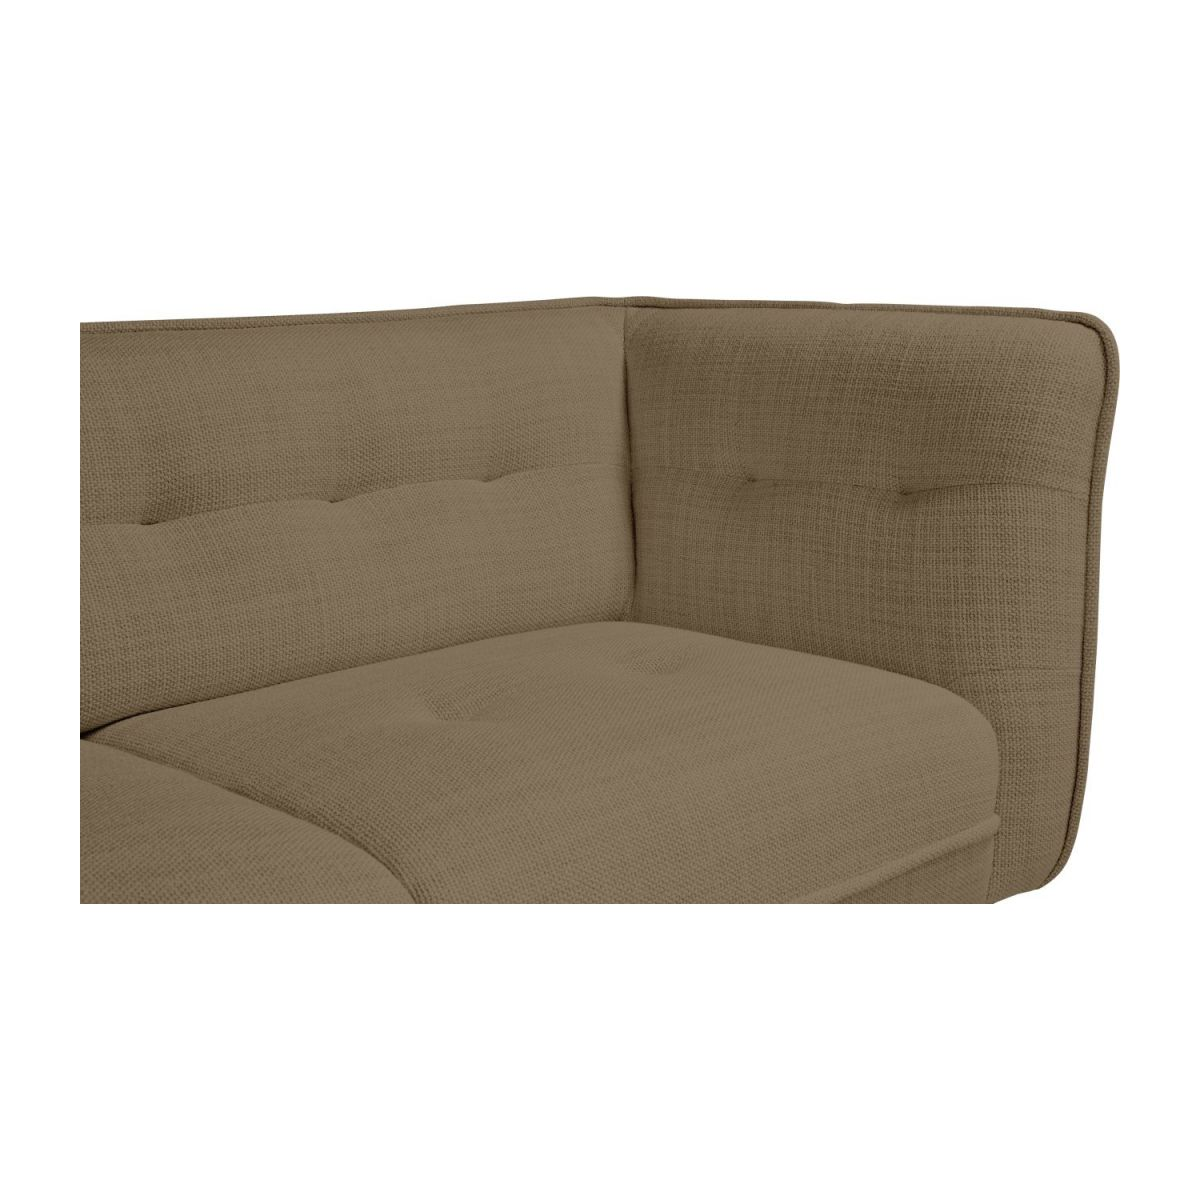 2 seater sofa in Fasoli fabric, jatoba brown and dark legs n°7